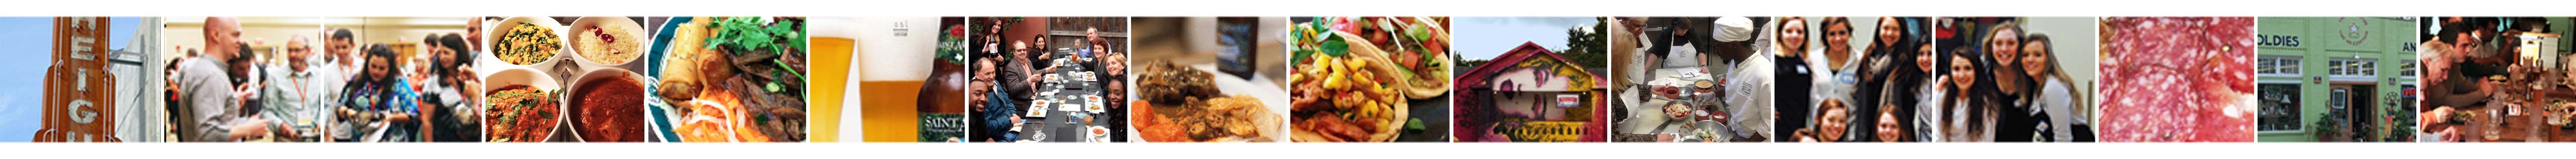 Taste of Houston Food Tours header